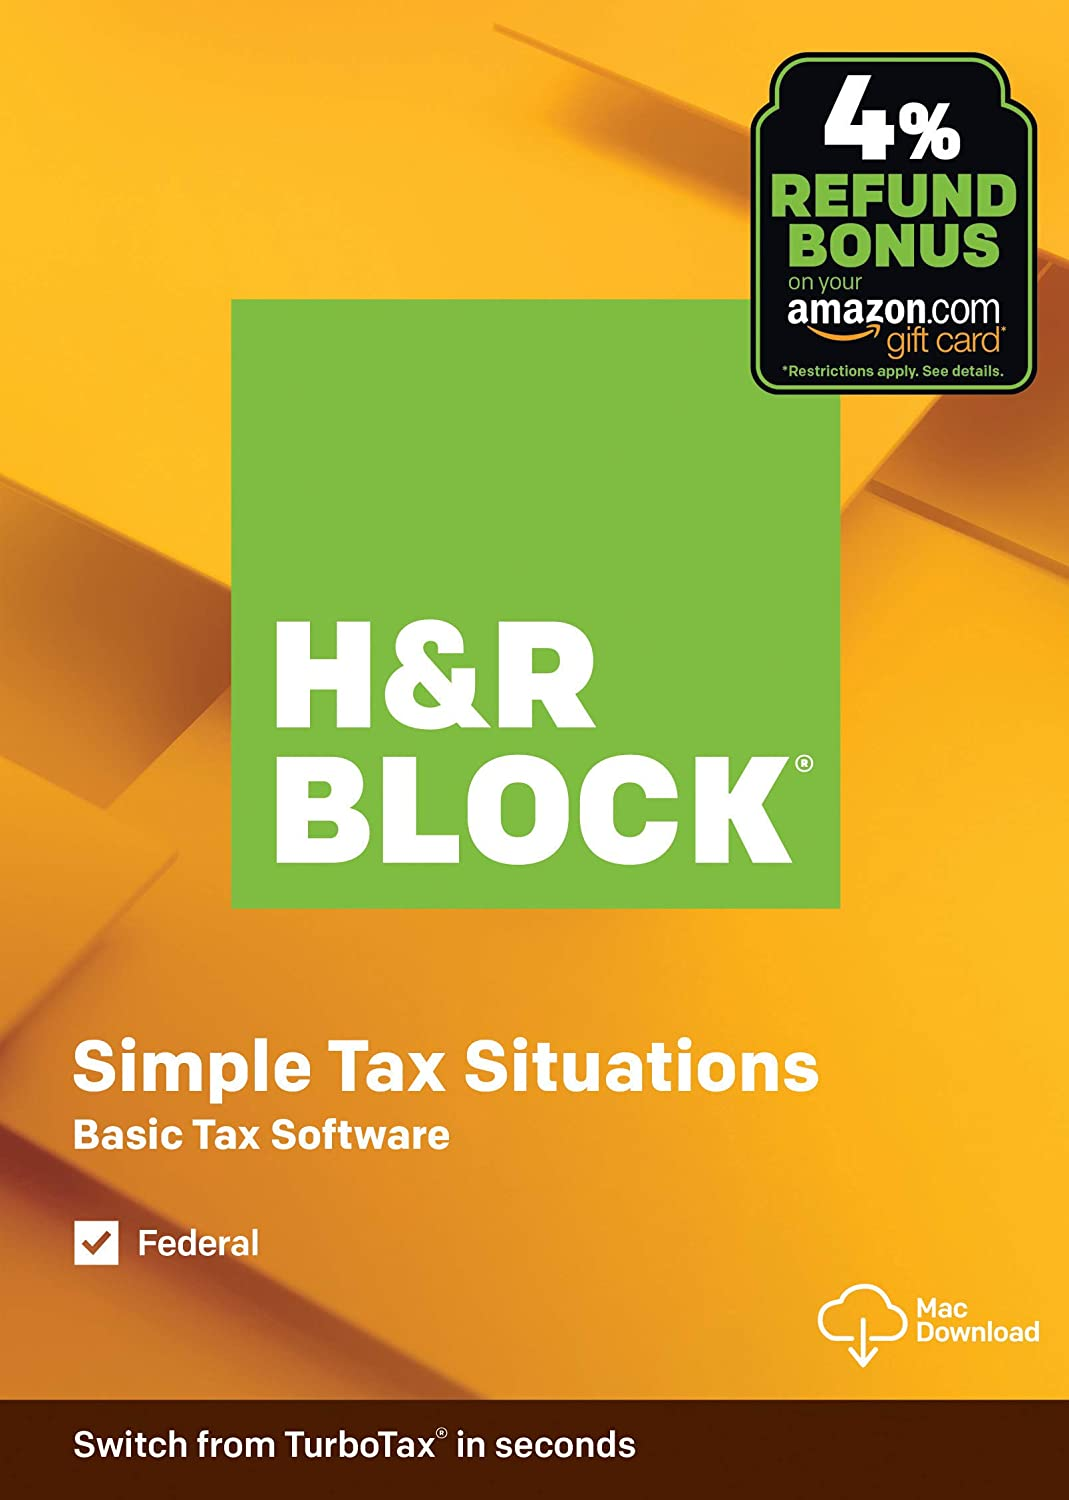 H&R Block Tax Software Basic 2019 with 4% Refund Bonus Offer [Amazon Exclusive] [Mac Download]